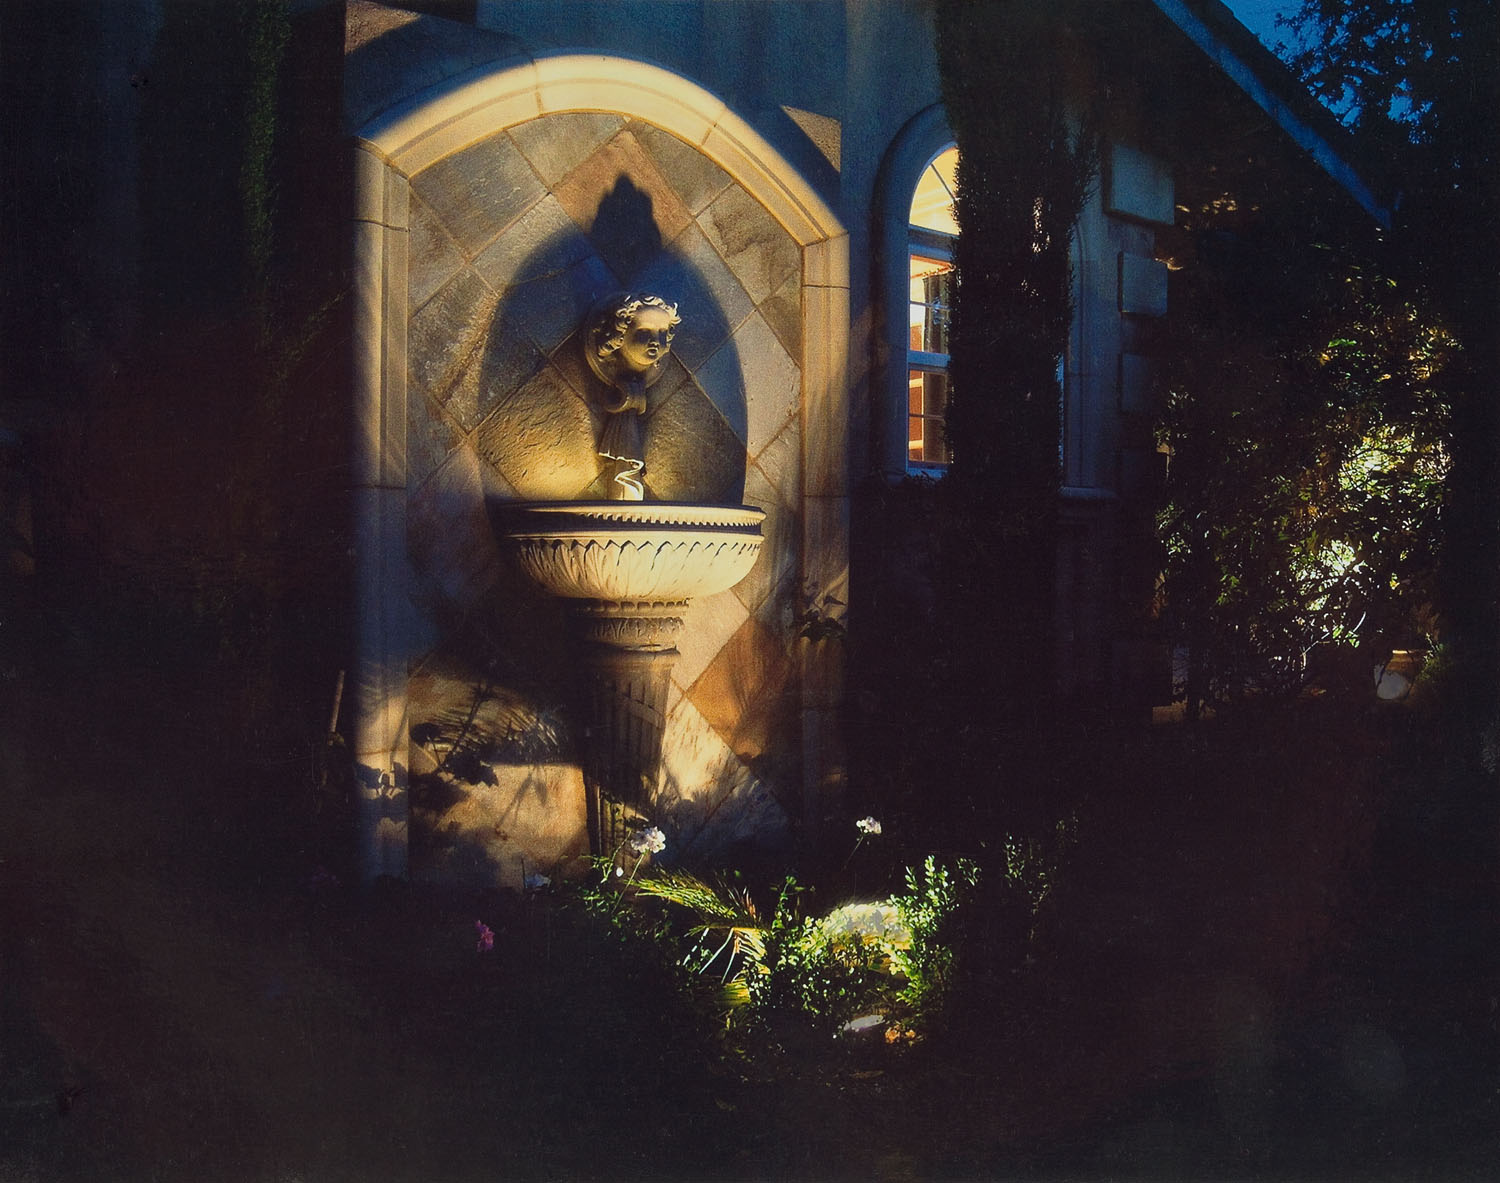 Fountain and landscape lighting, Fairfield, CA